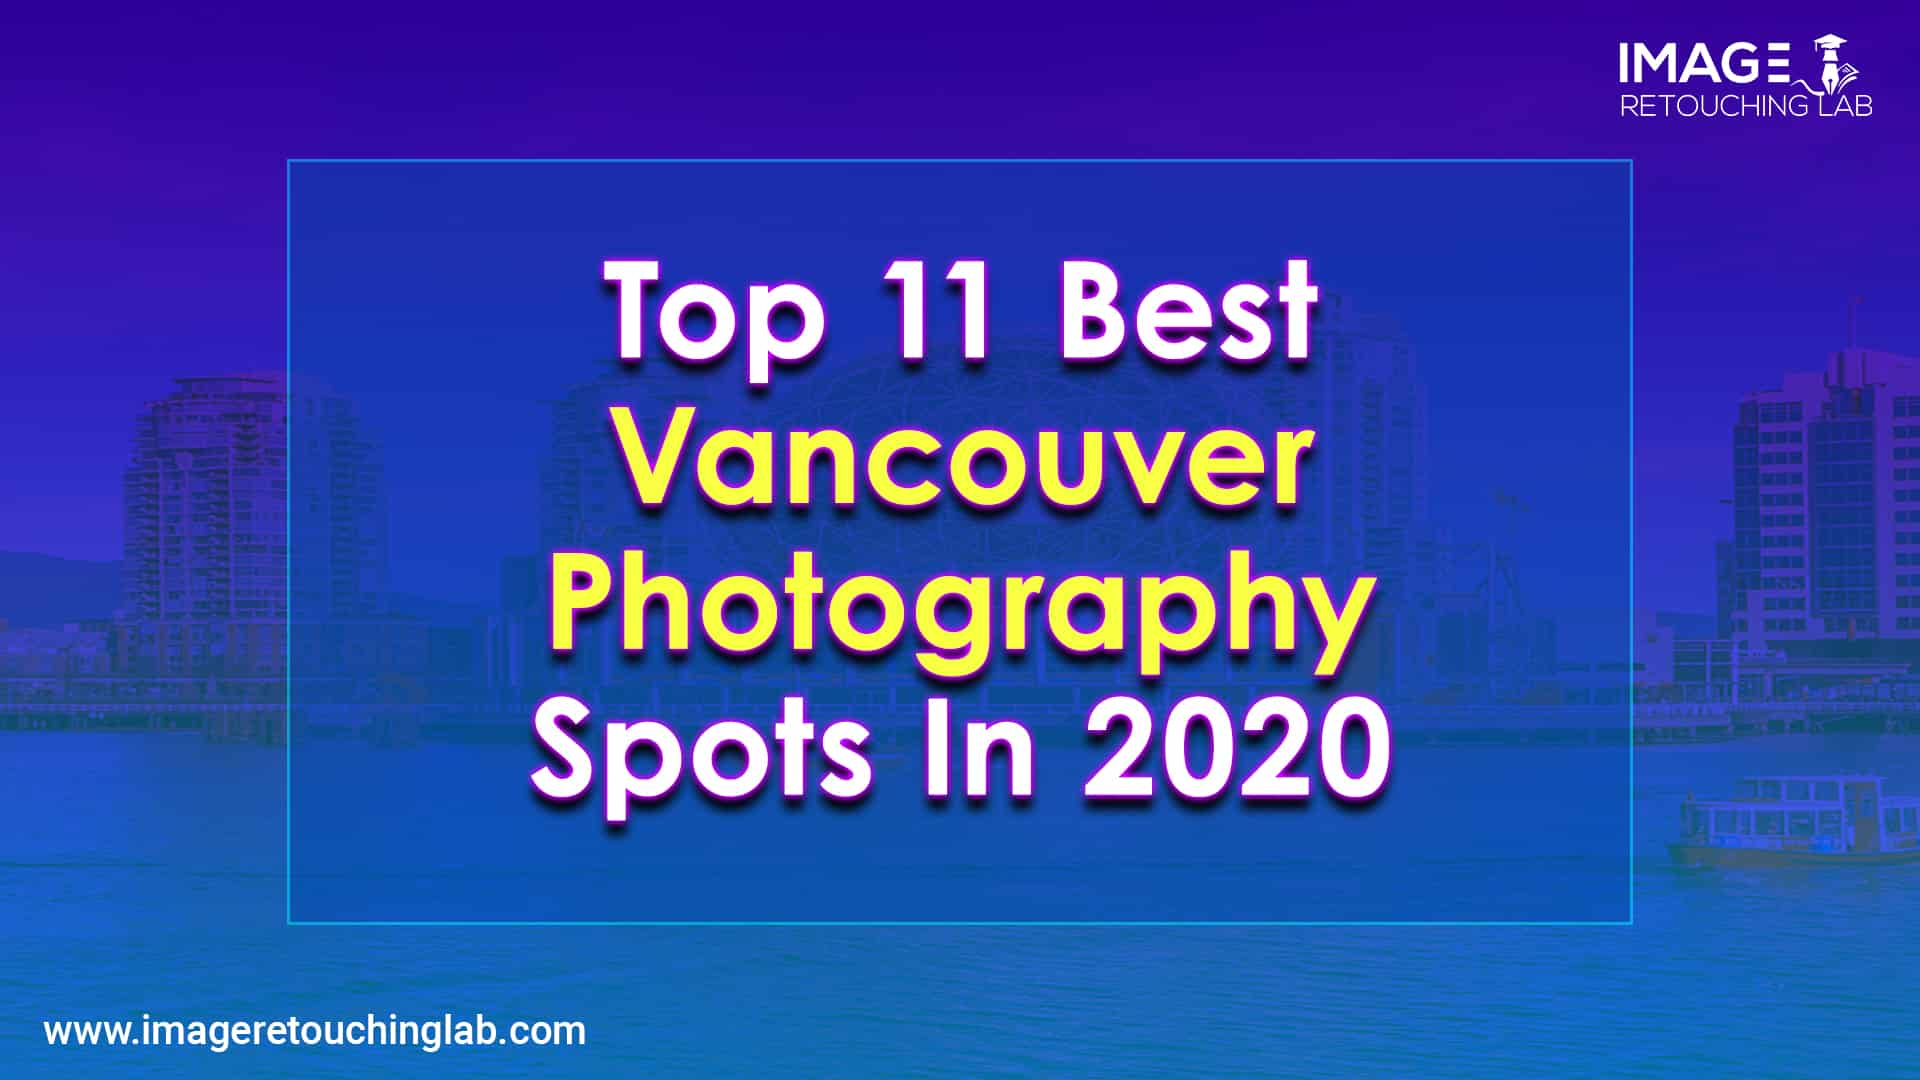 Top 11 Best Vancouver Photography Spots In 2020